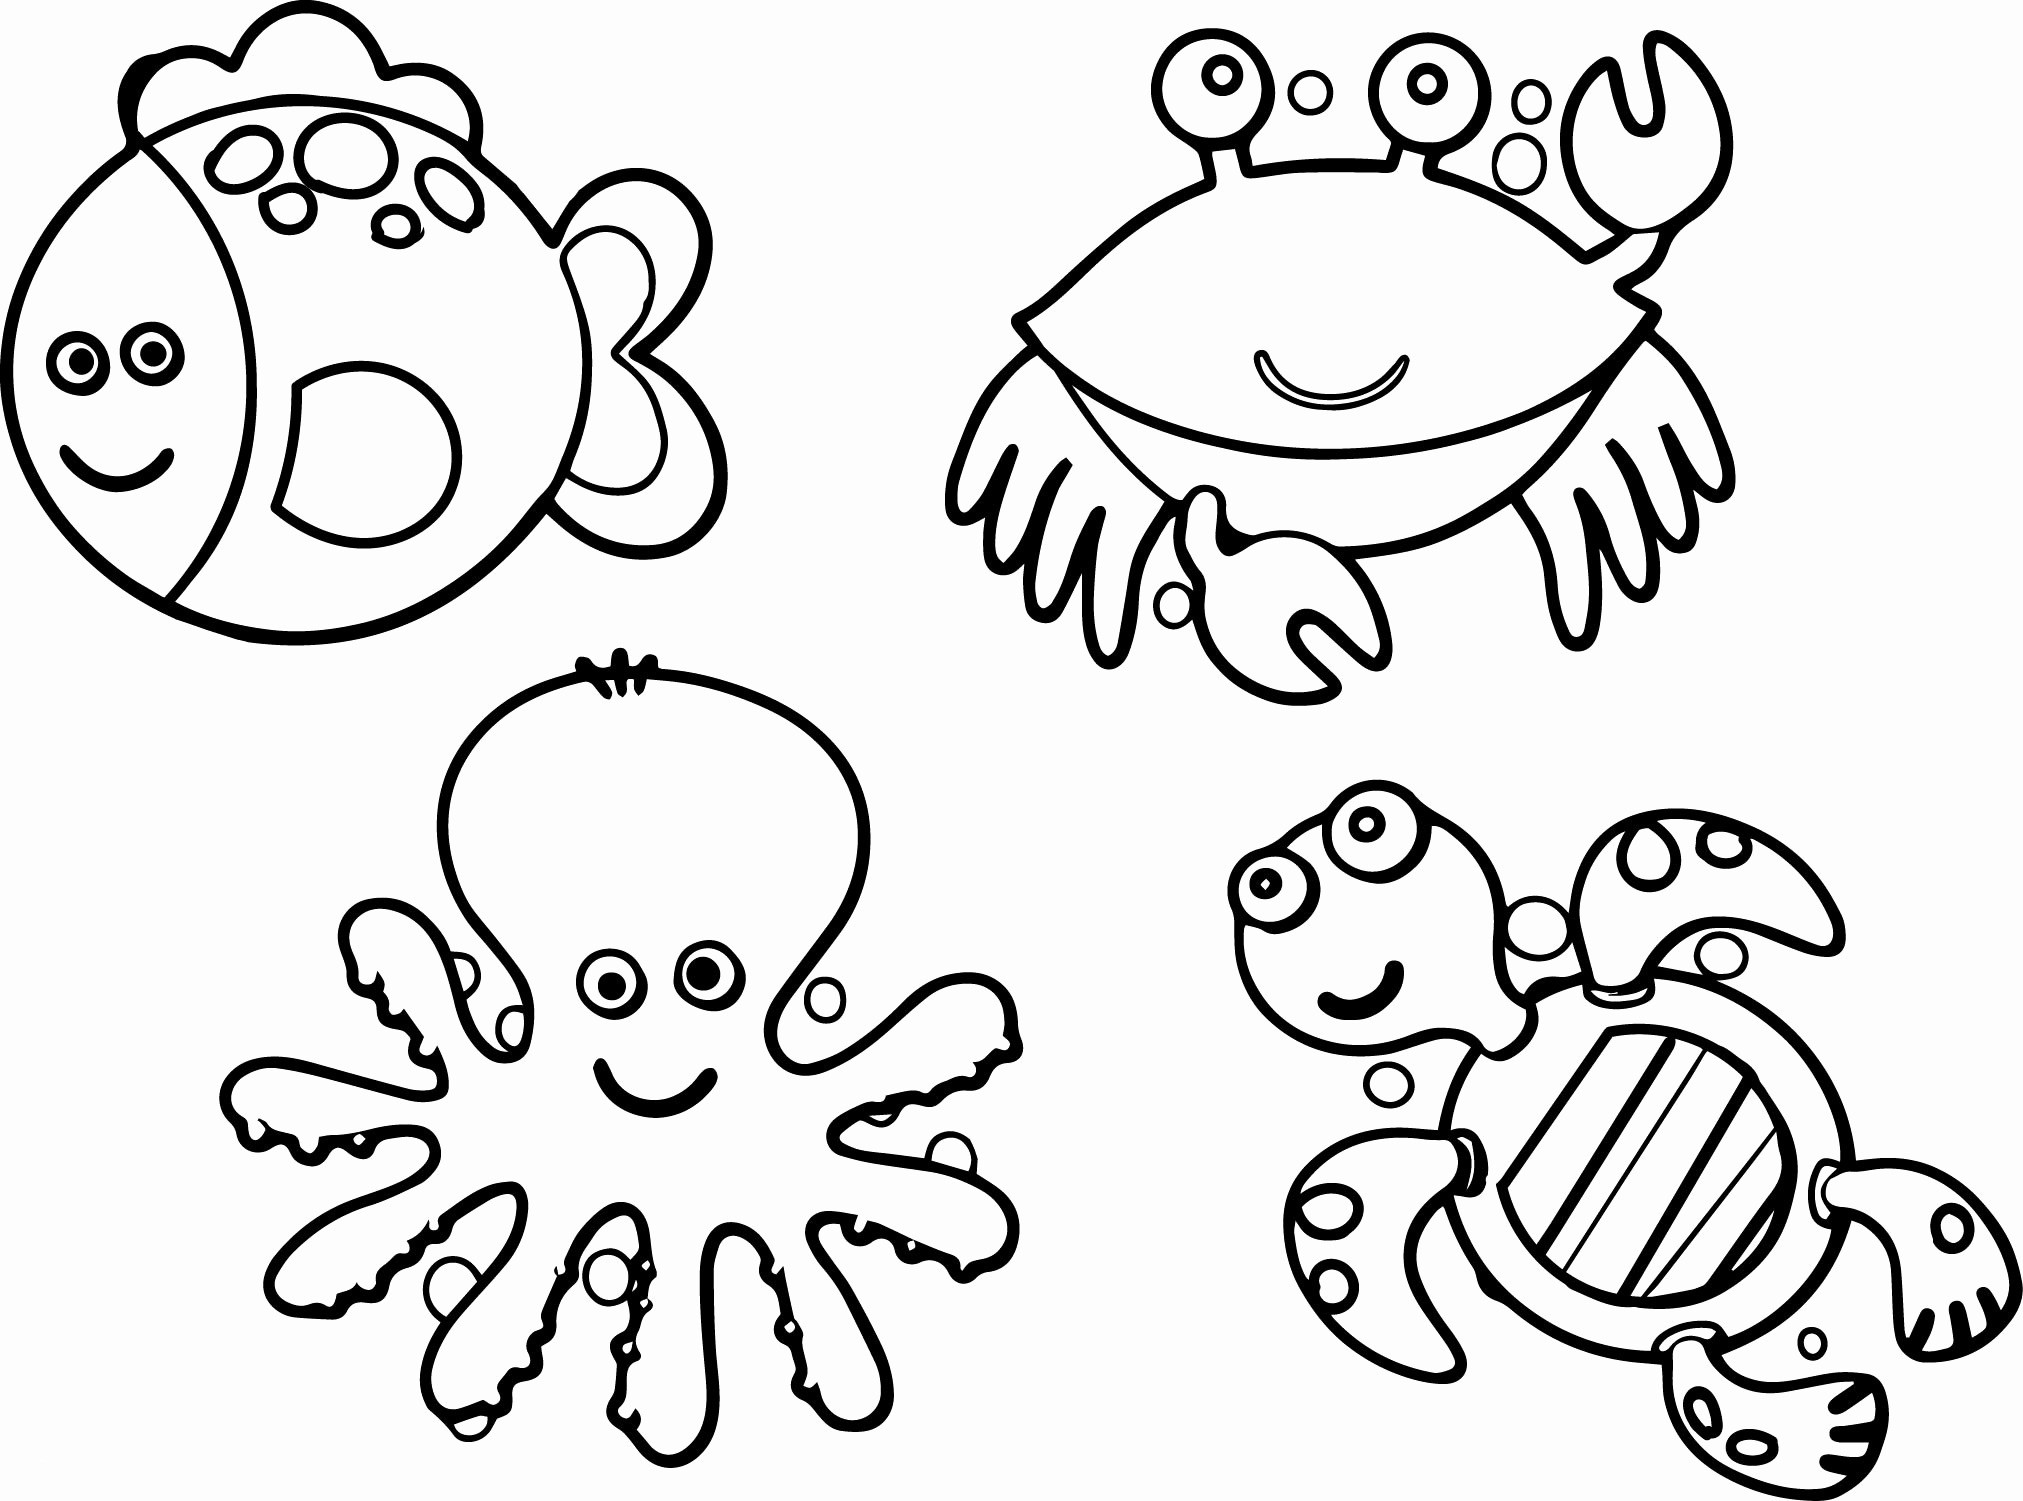 coloring pictures for kids 20 fun halloween coloring pages for kids hative kids coloring for pictures